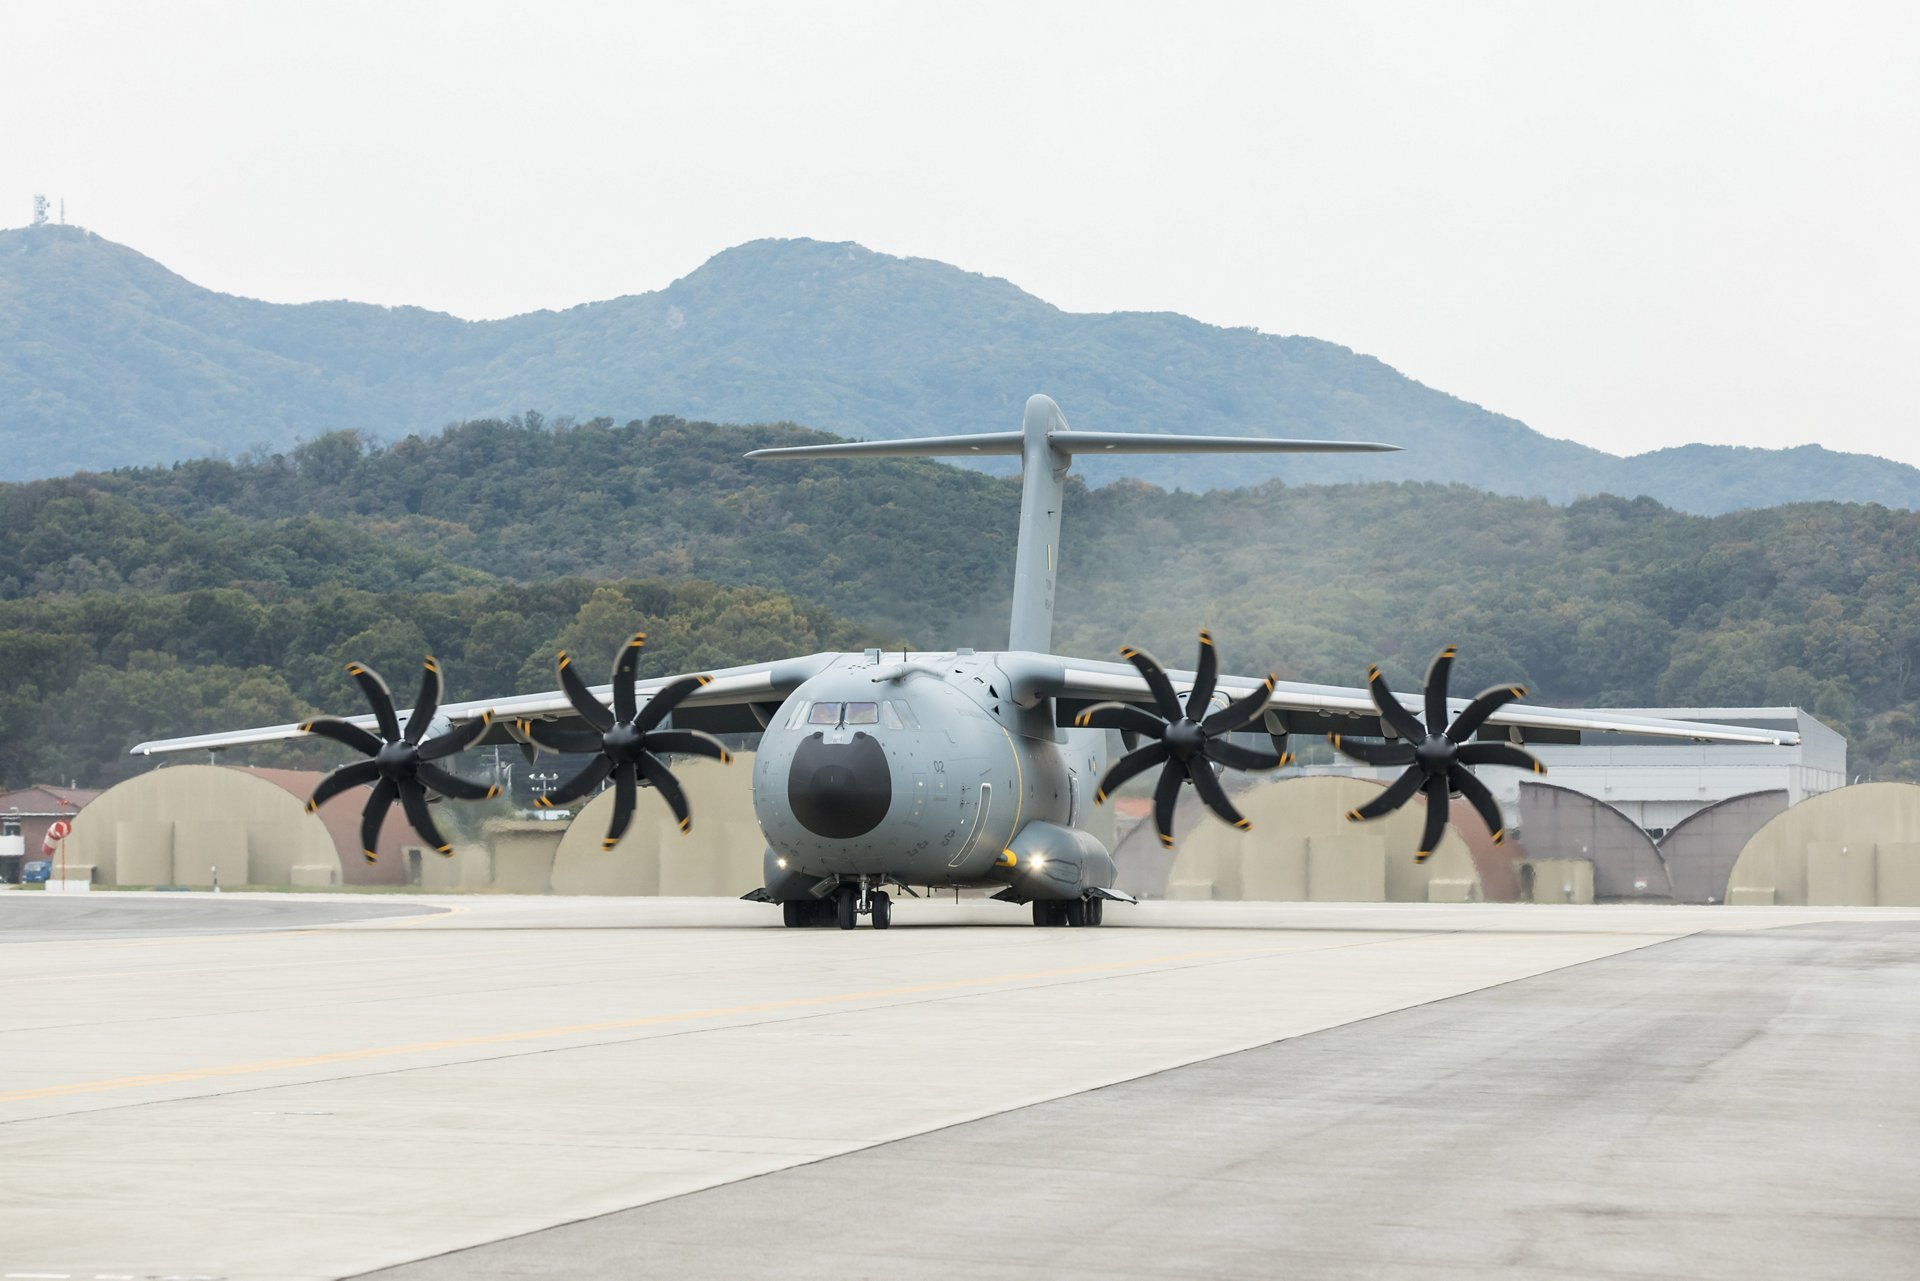 A400M on ground